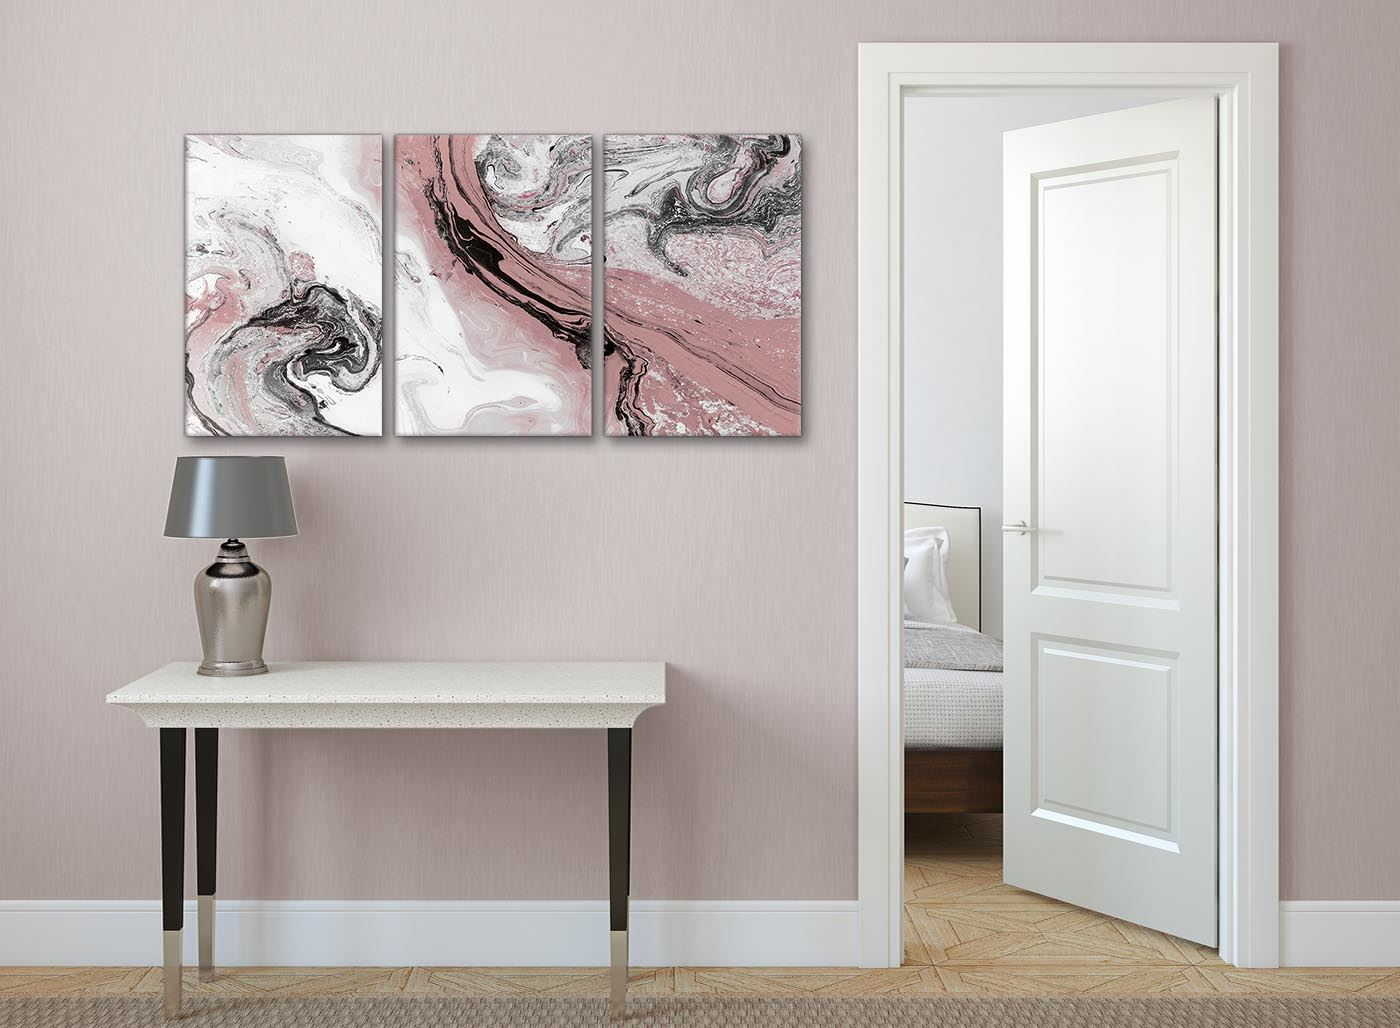 Details about Blush Pink and Grey Living Room Canvas Wall Art Accessories -  Abstract Print